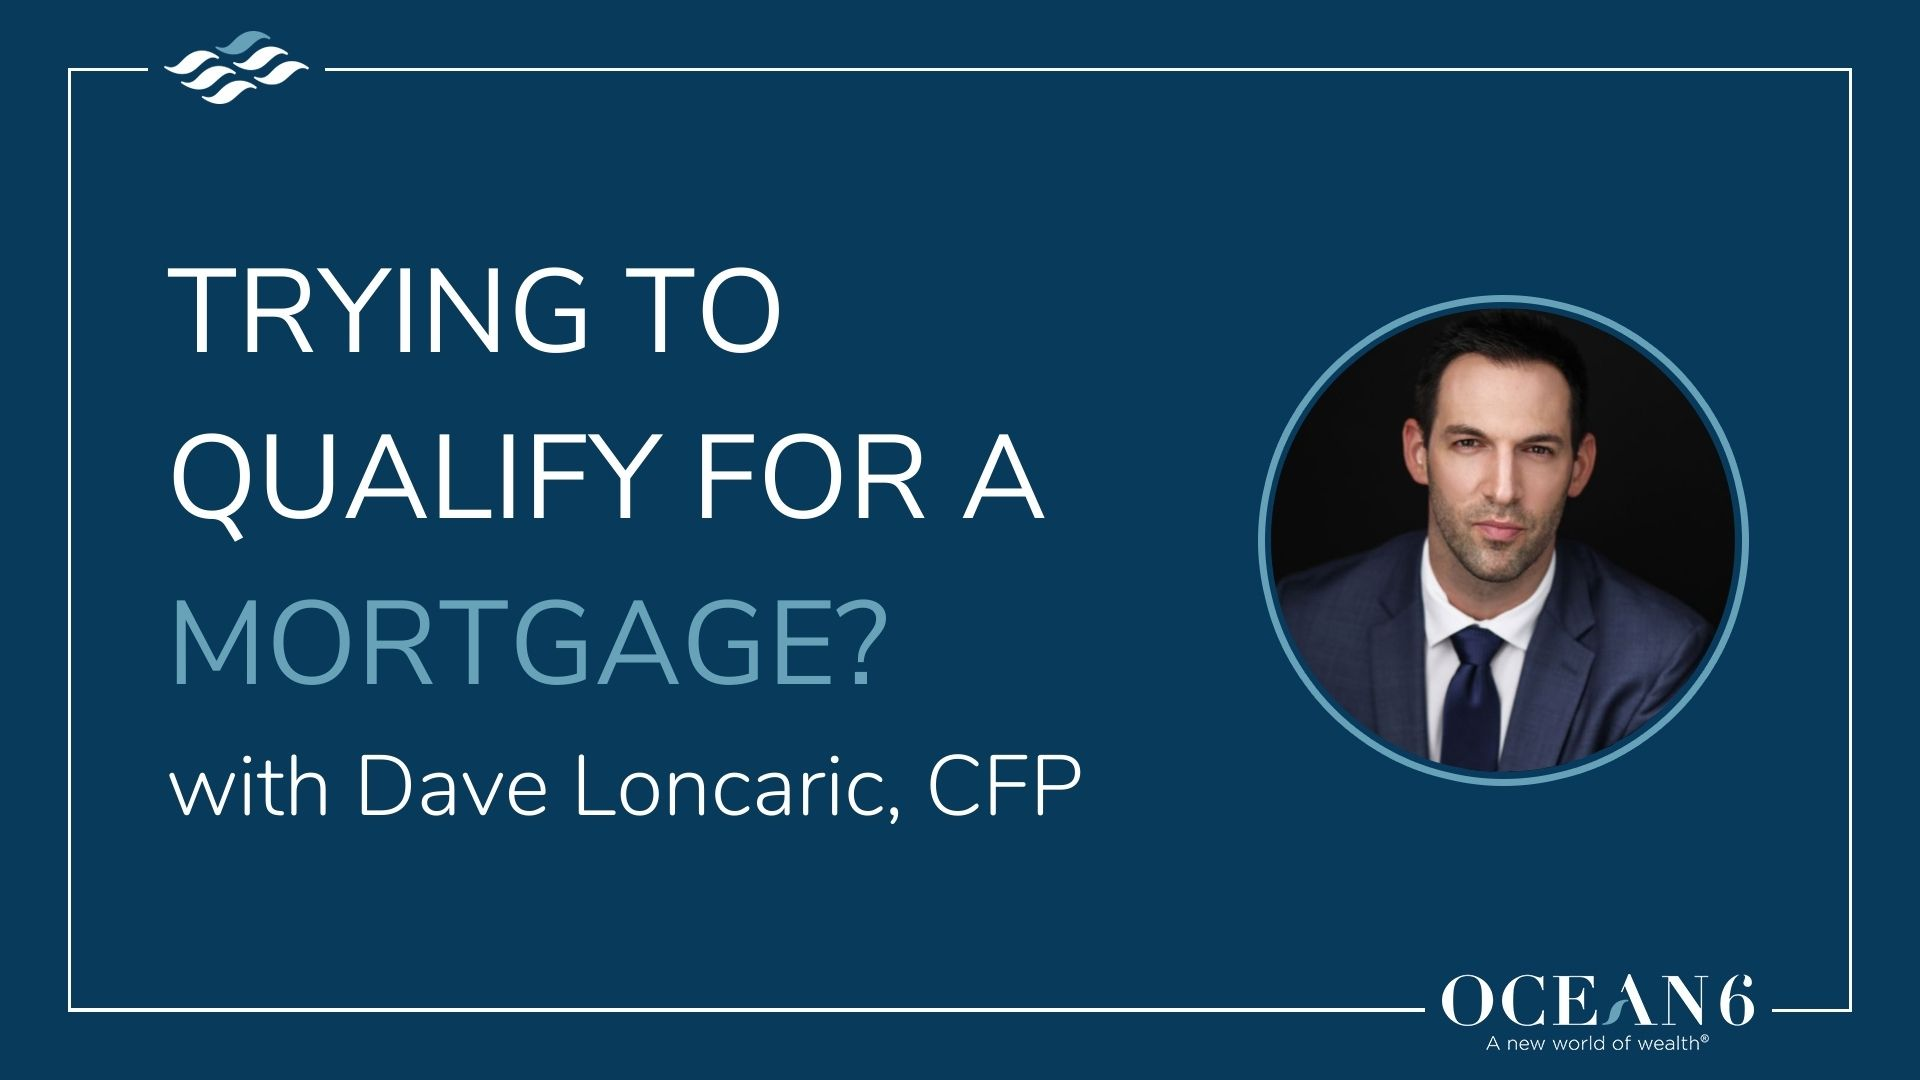 How To Qualify For a Mortgage As A Business Owner